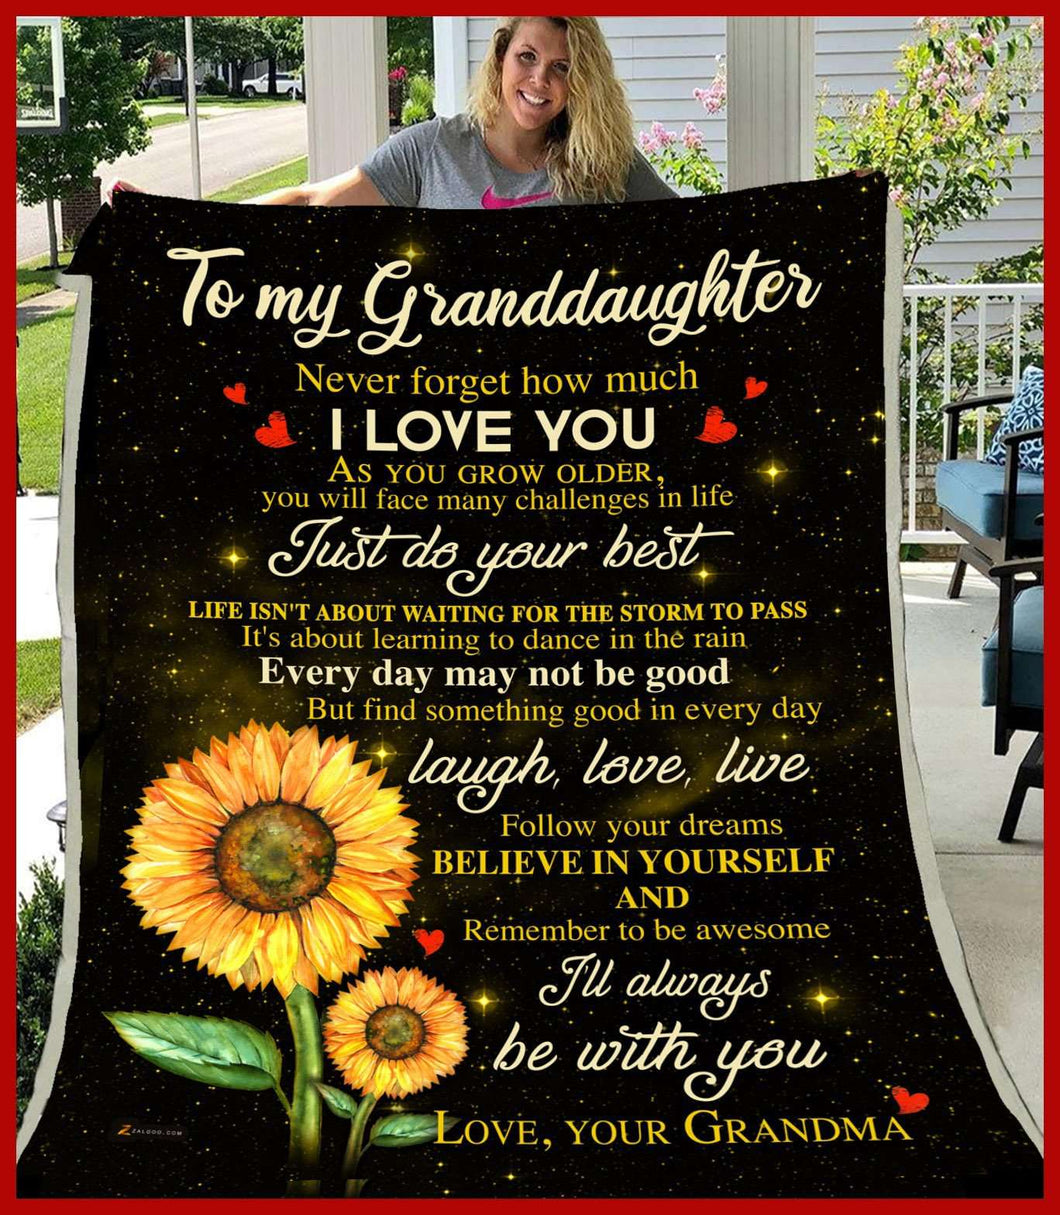 PP - BLANKET - Granddaughter (Grandma) - I'll always be with you - yenyenstore